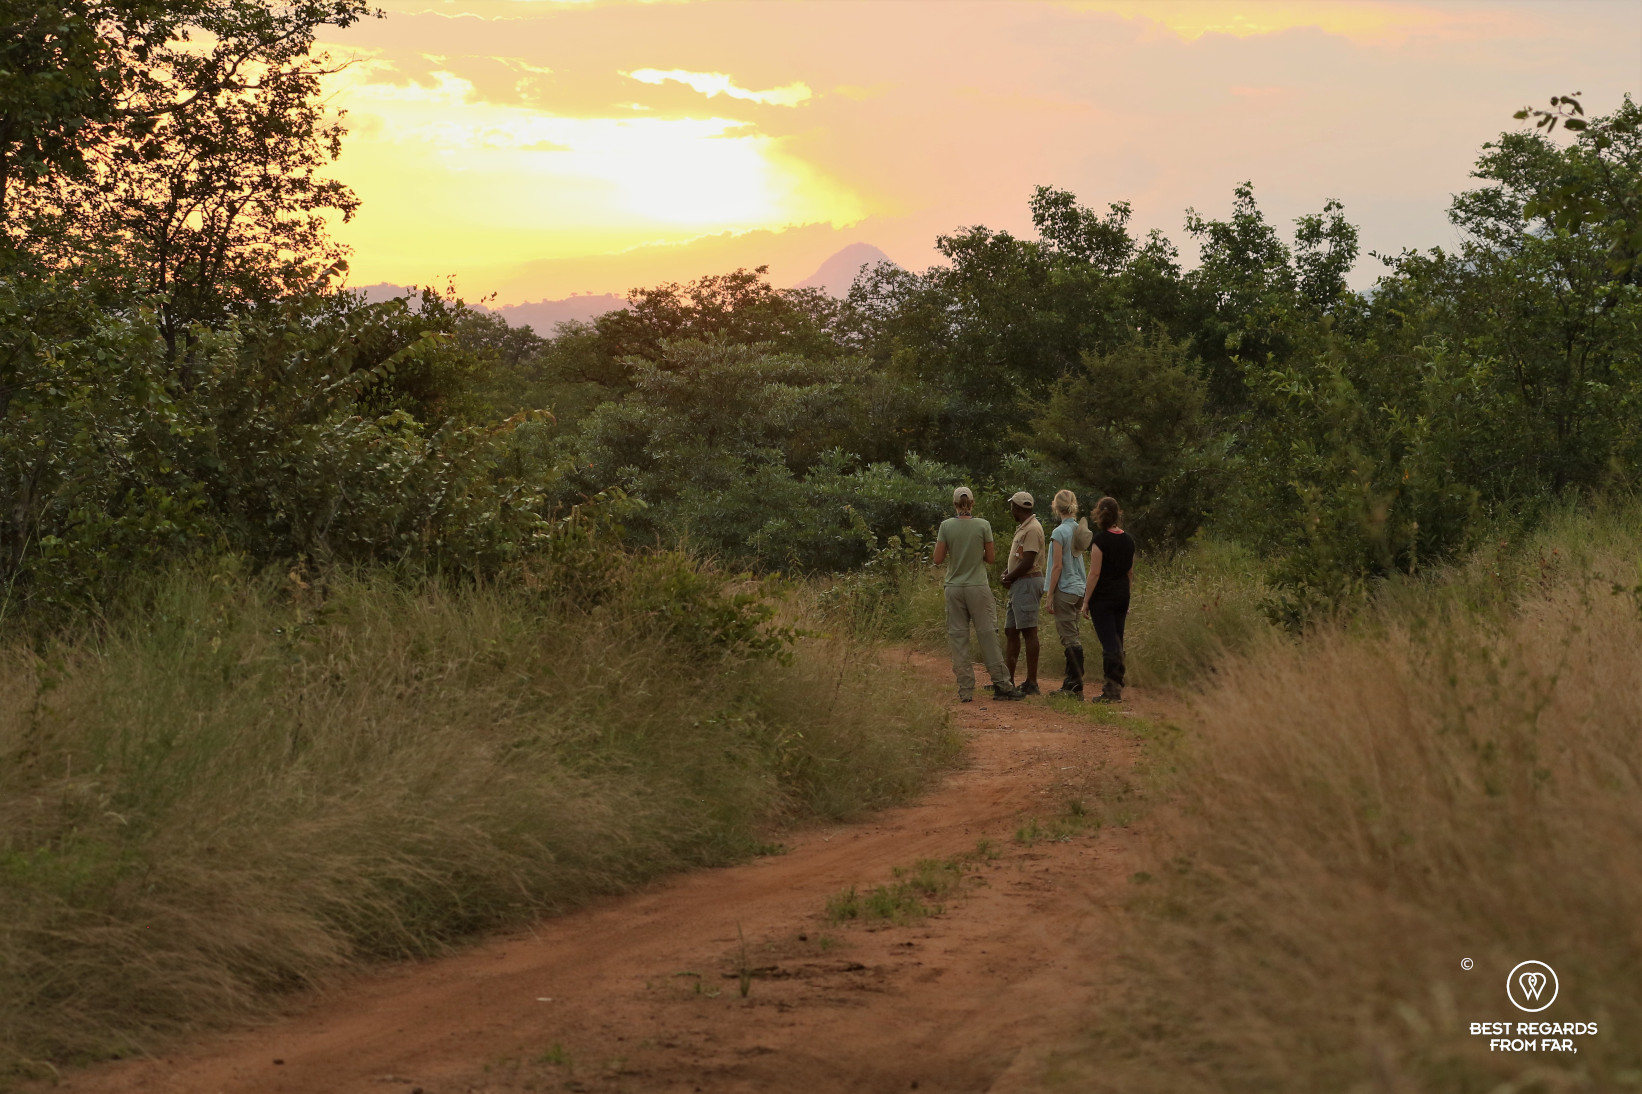 Students admiring a sunset in the African bush